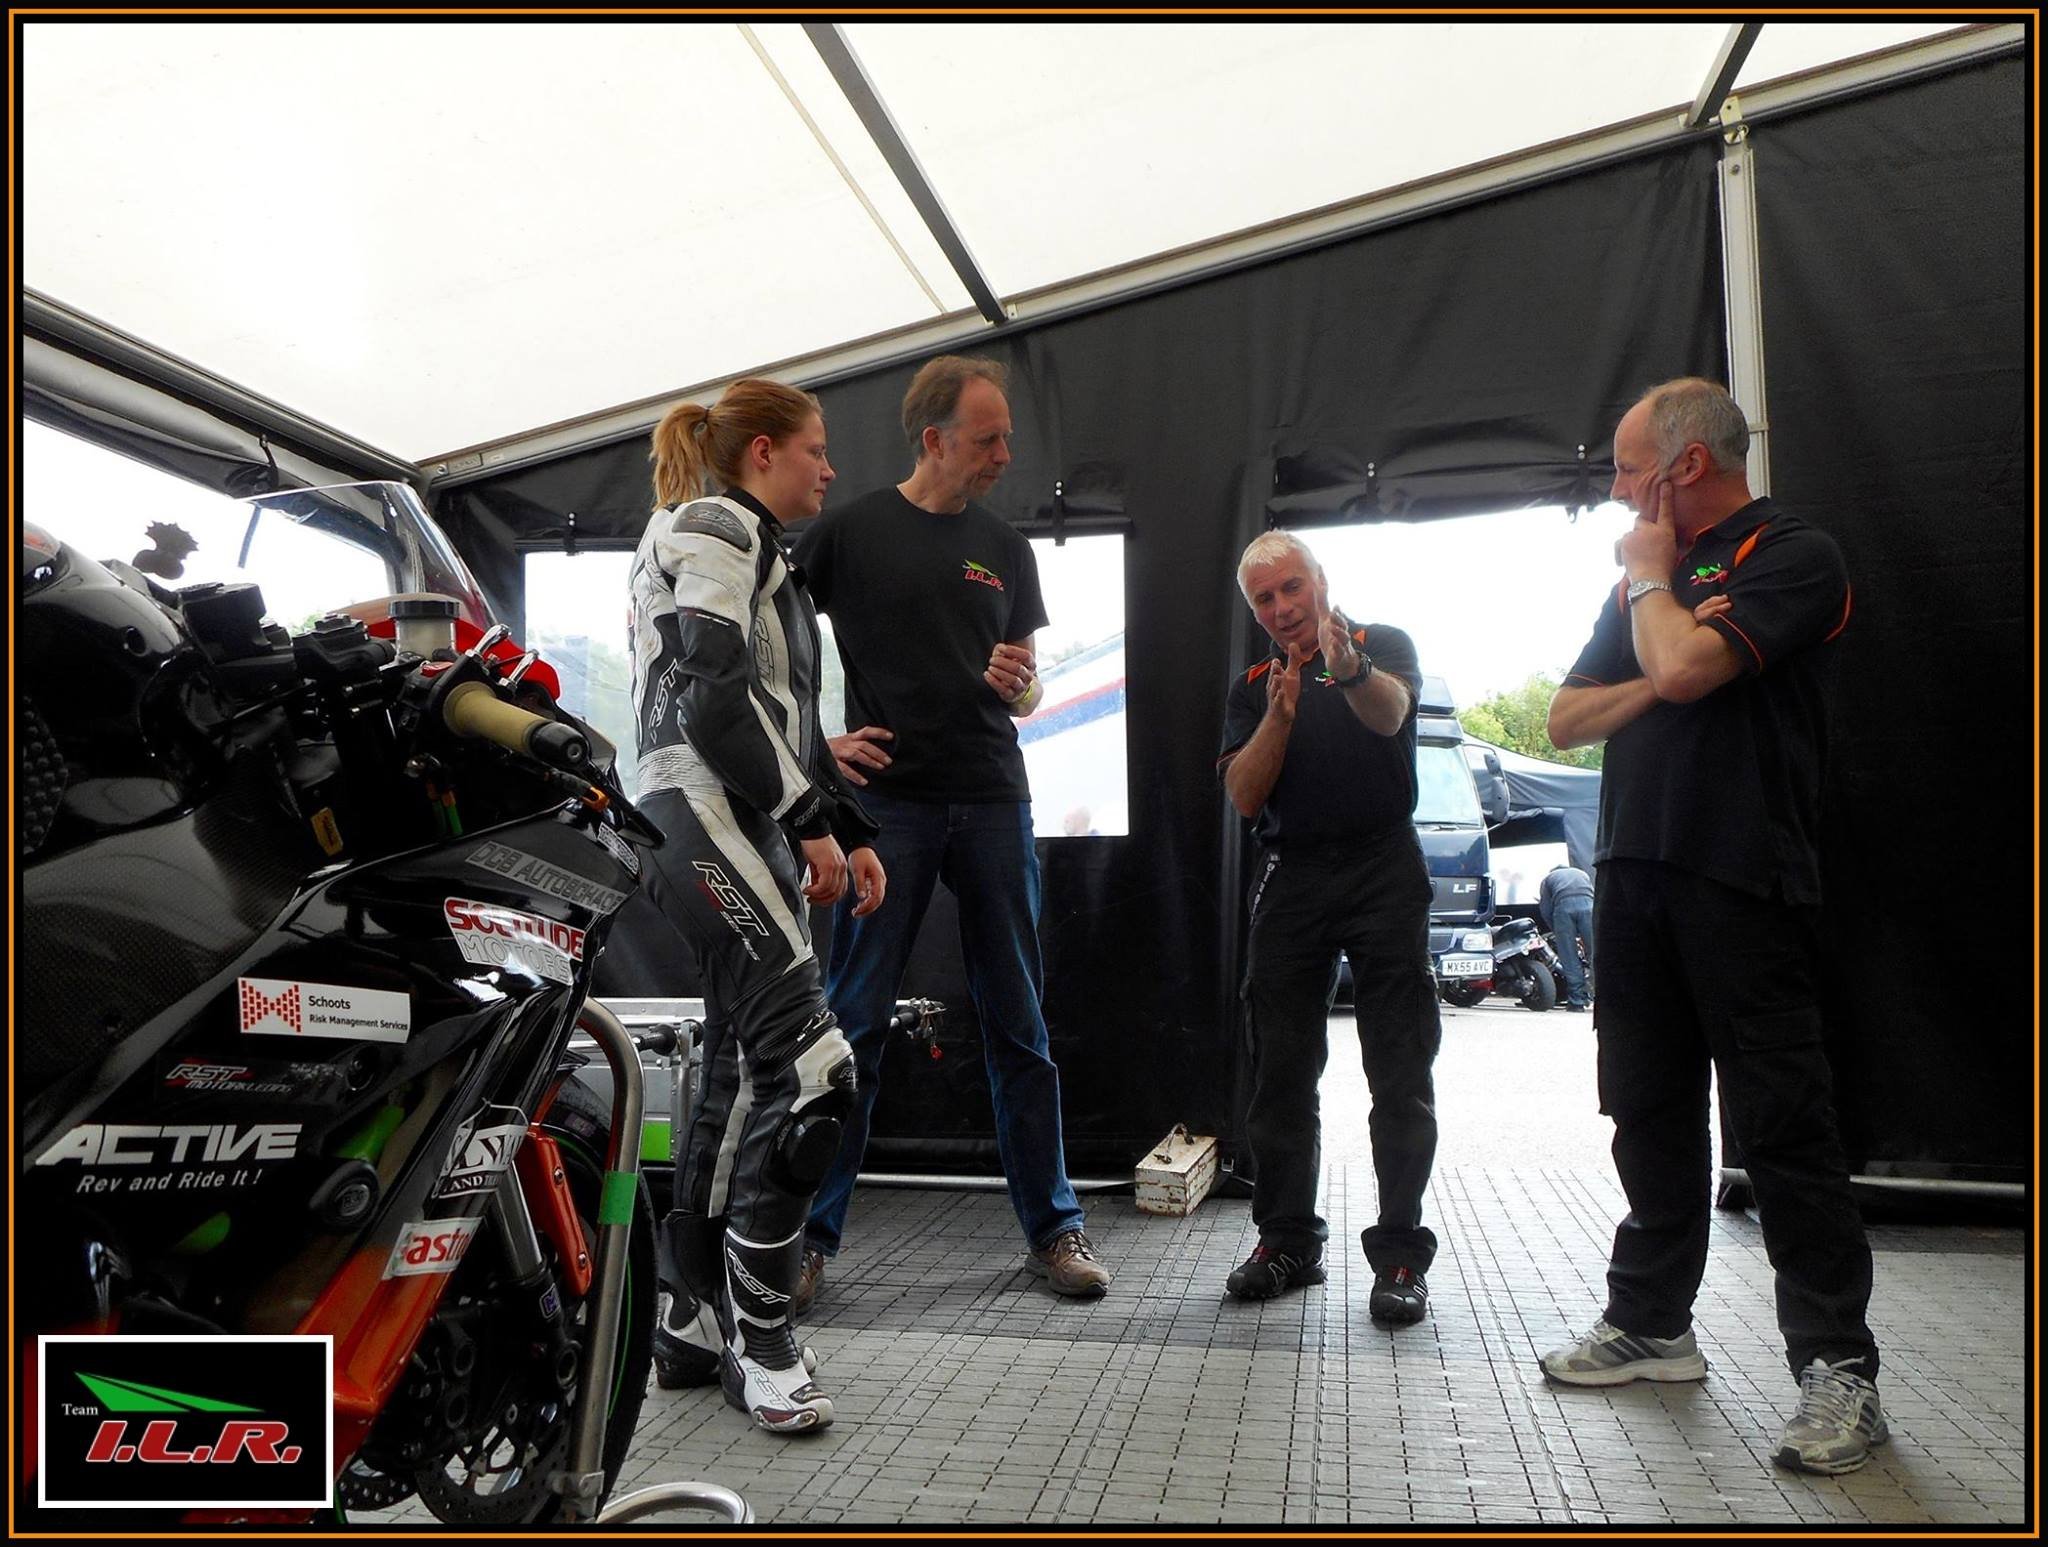 Getting some tips on line choice from my Team ILR mechanic Jacko.